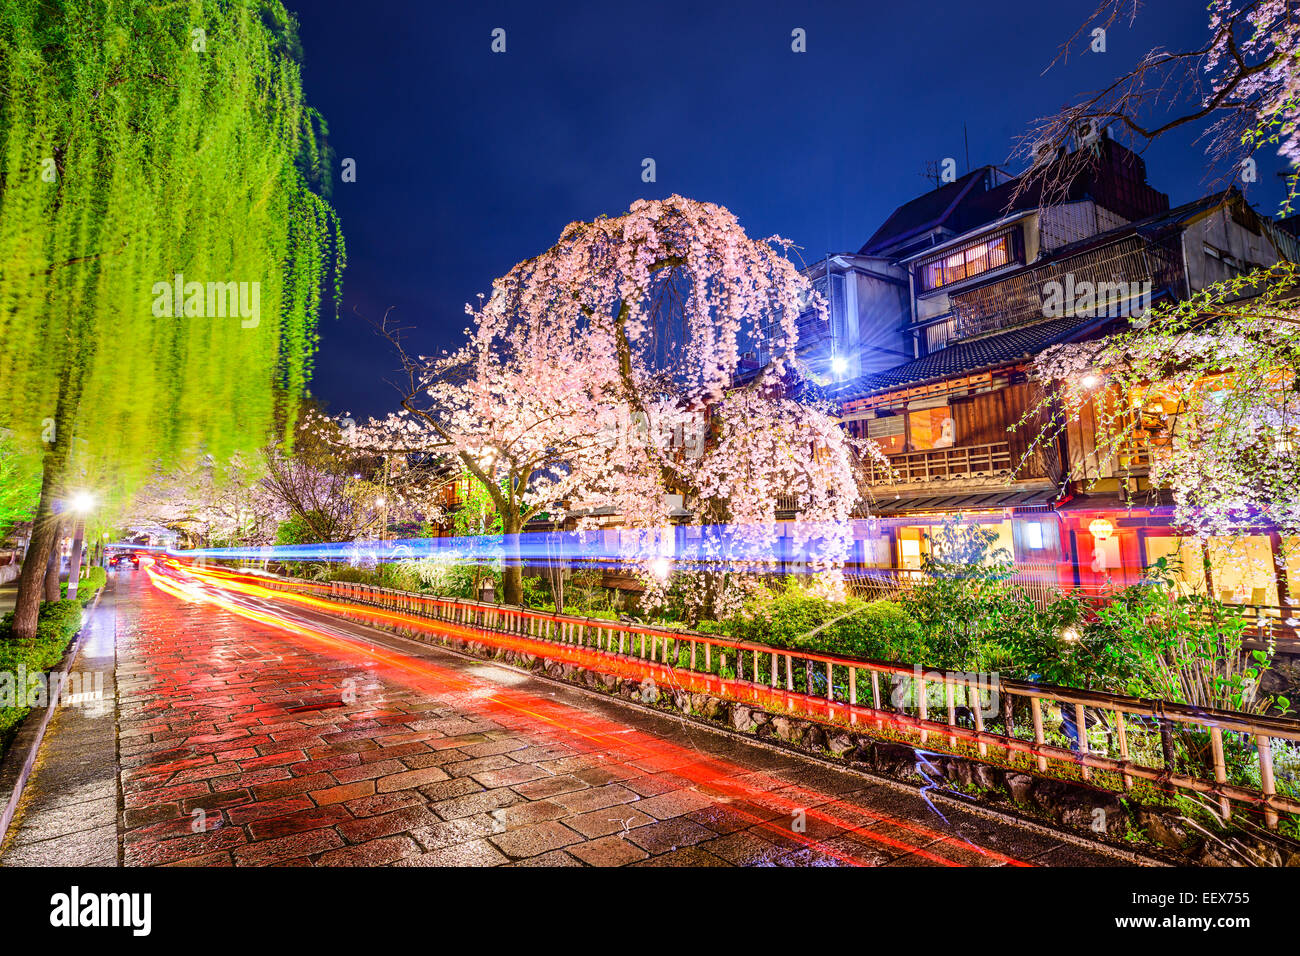 Kyoto, Japan at the historic Gion District during the spring season. - Stock Image